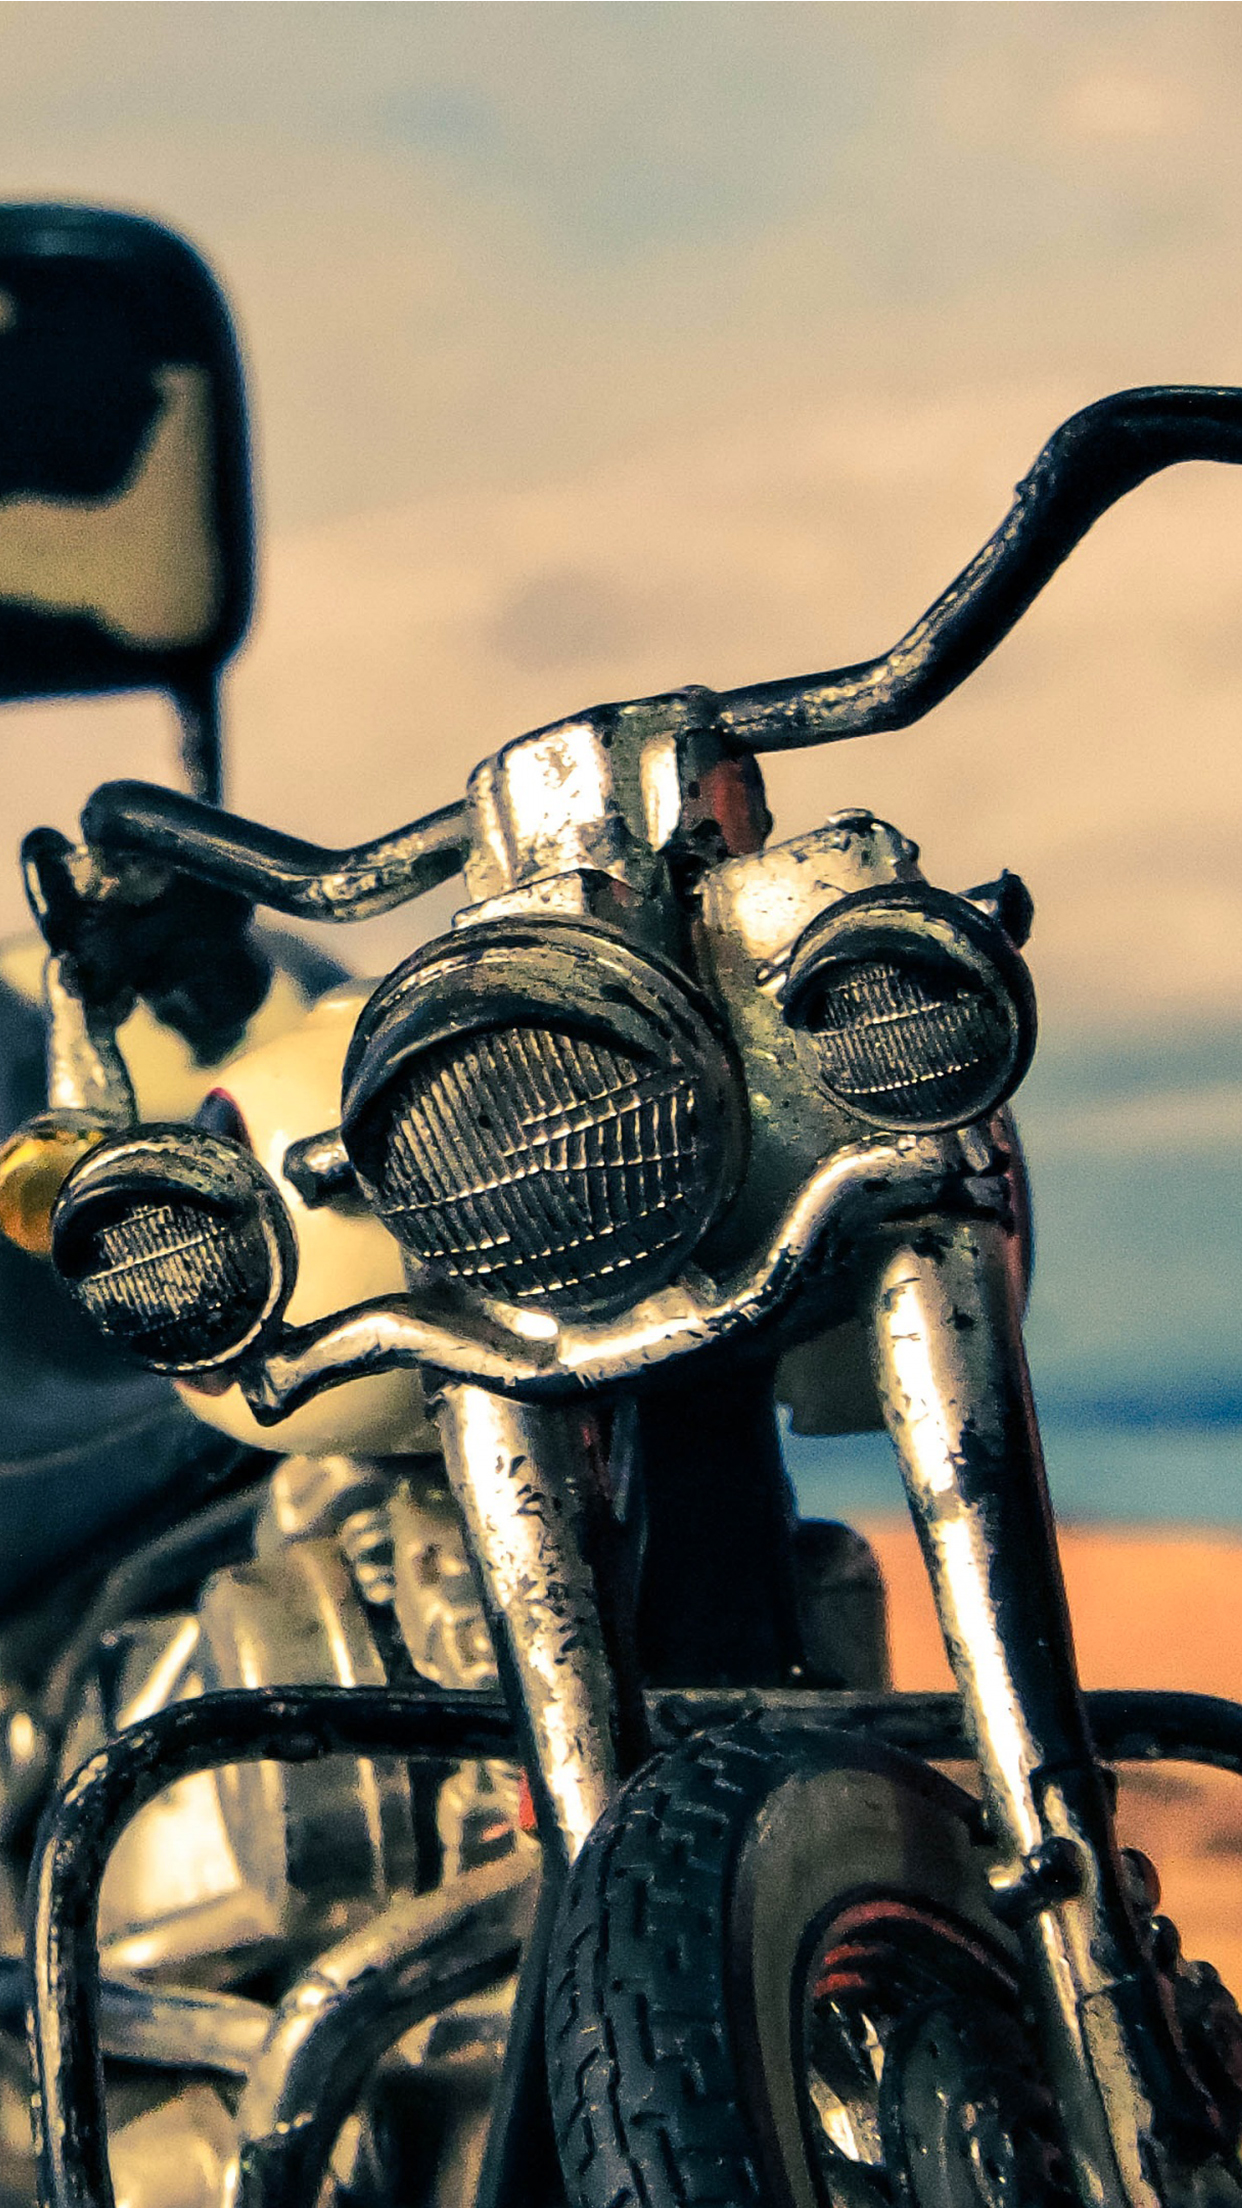 Harley Davidson Heritage Wallpaper for iPhone 11, Pro Max ...